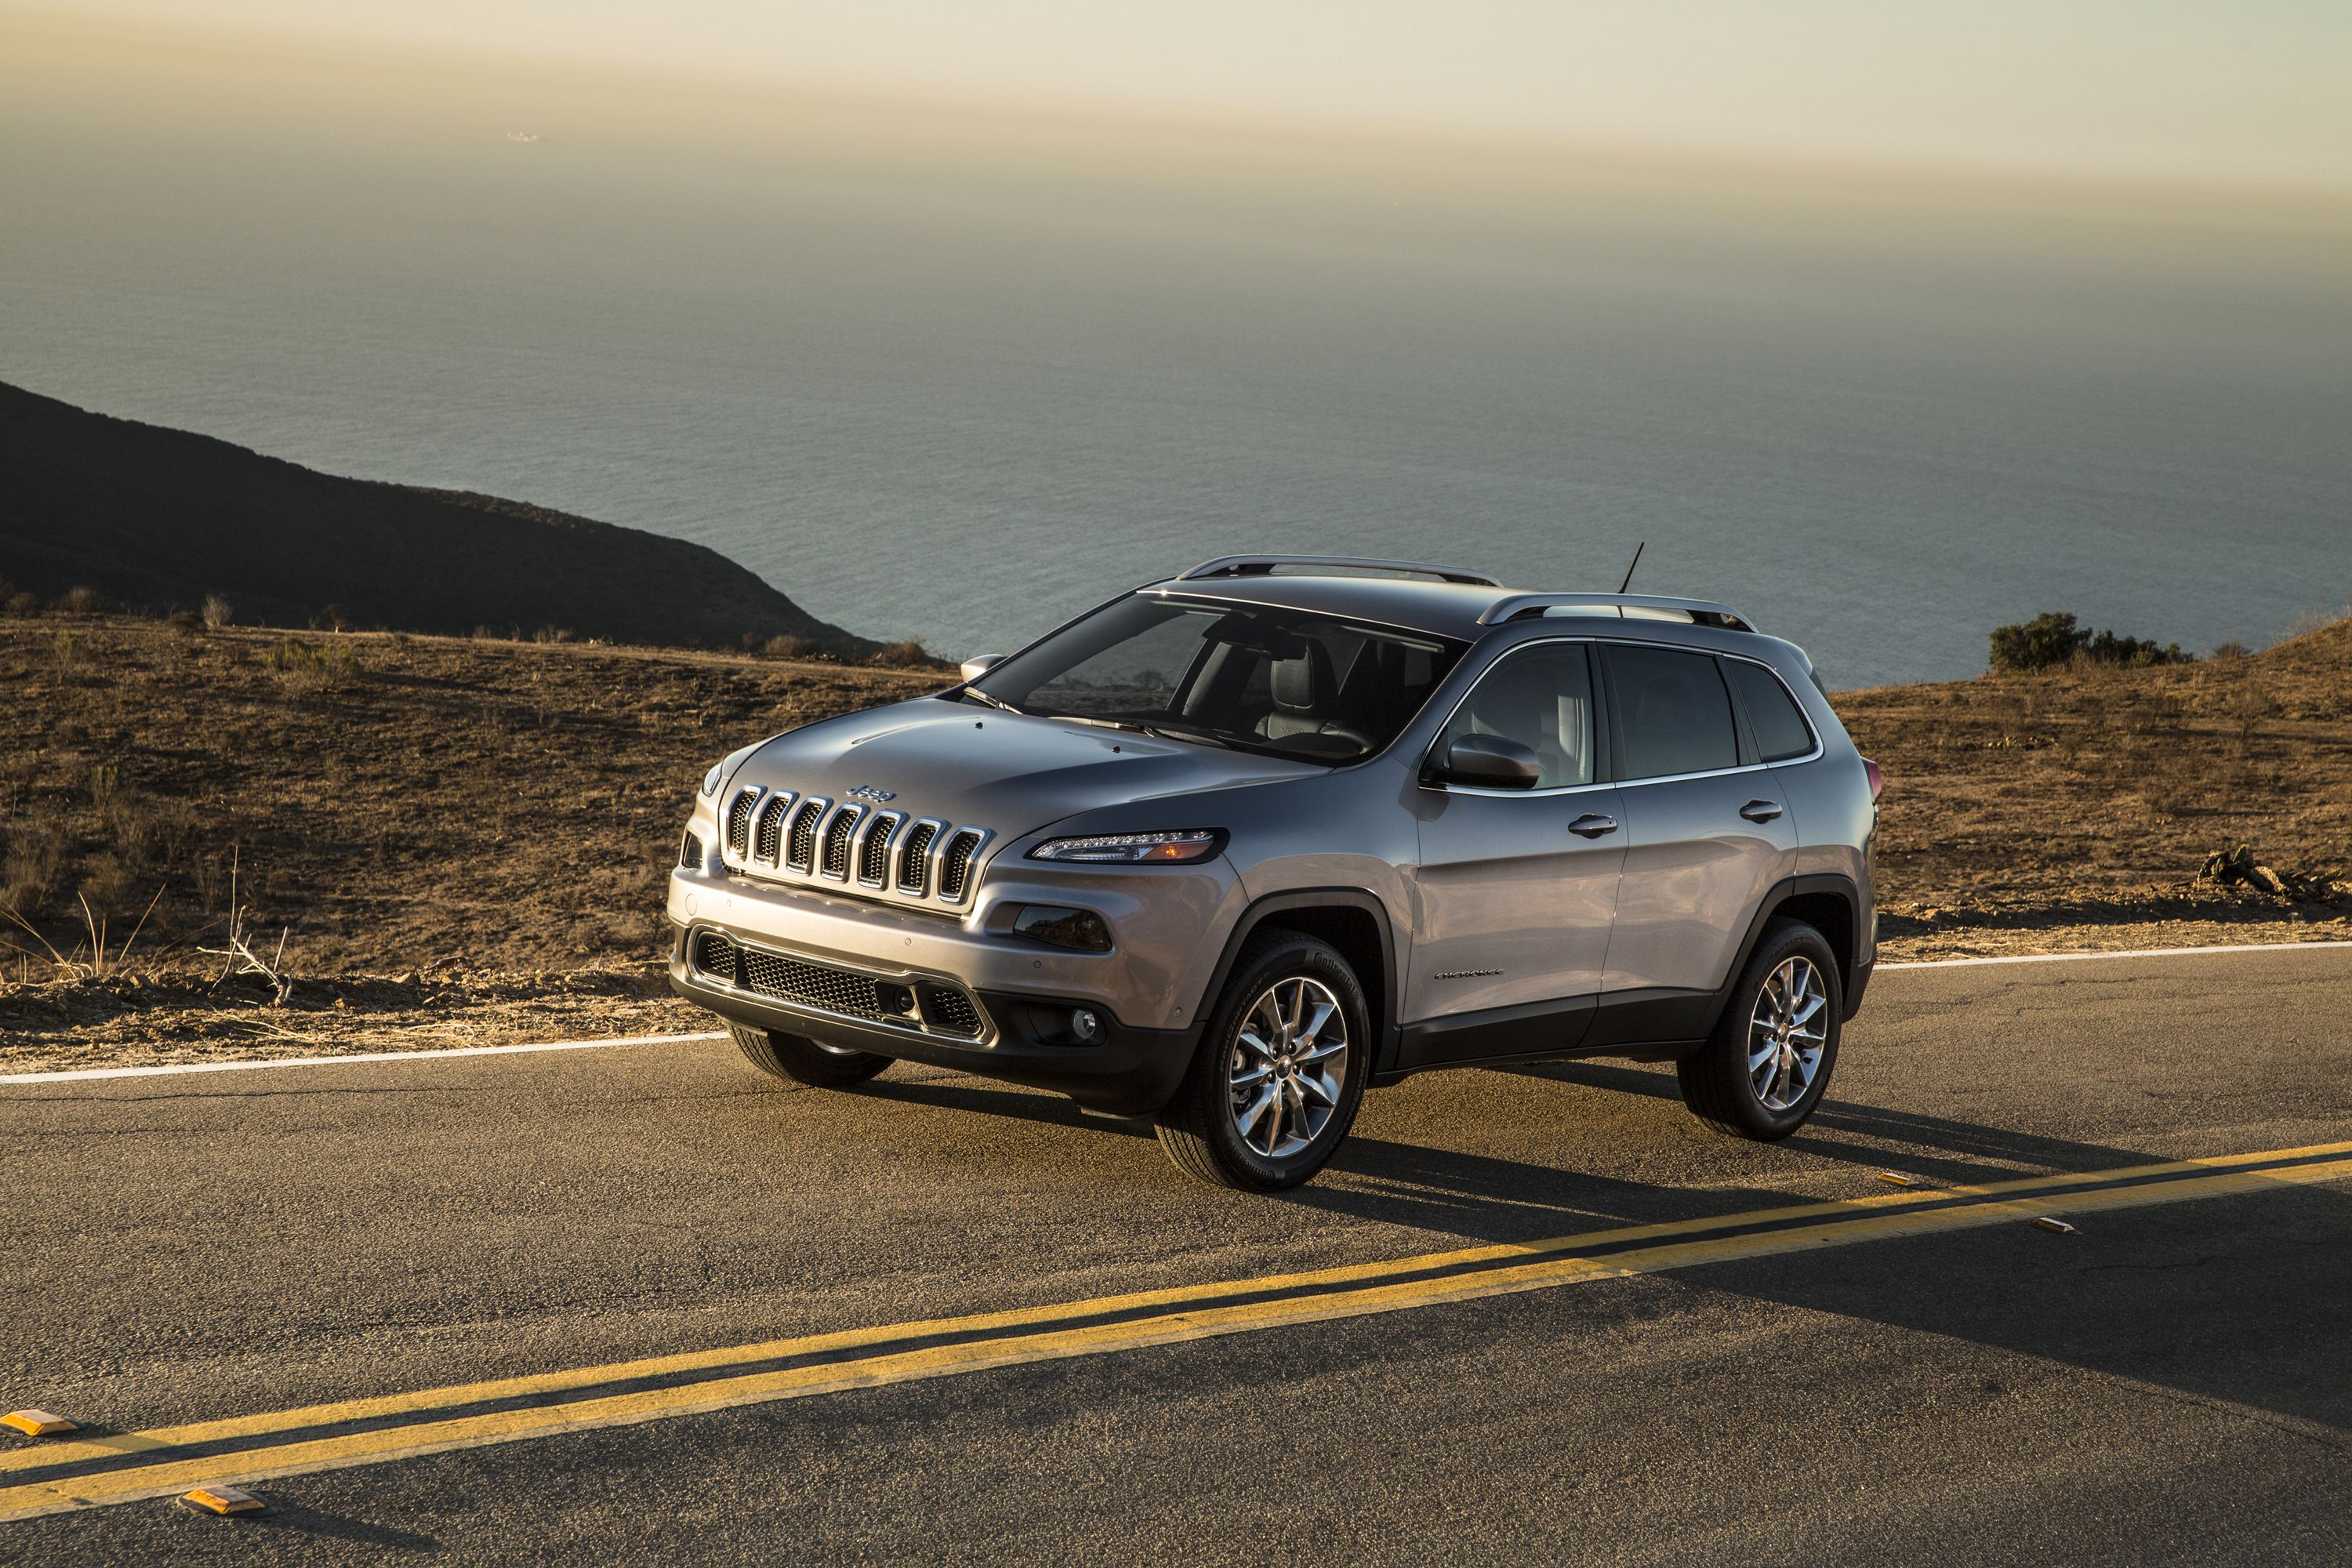 jeep transmission wiring harness jeep recalls 2014 cherokee again for zf nine speed transmission  jeep recalls 2014 cherokee again for zf